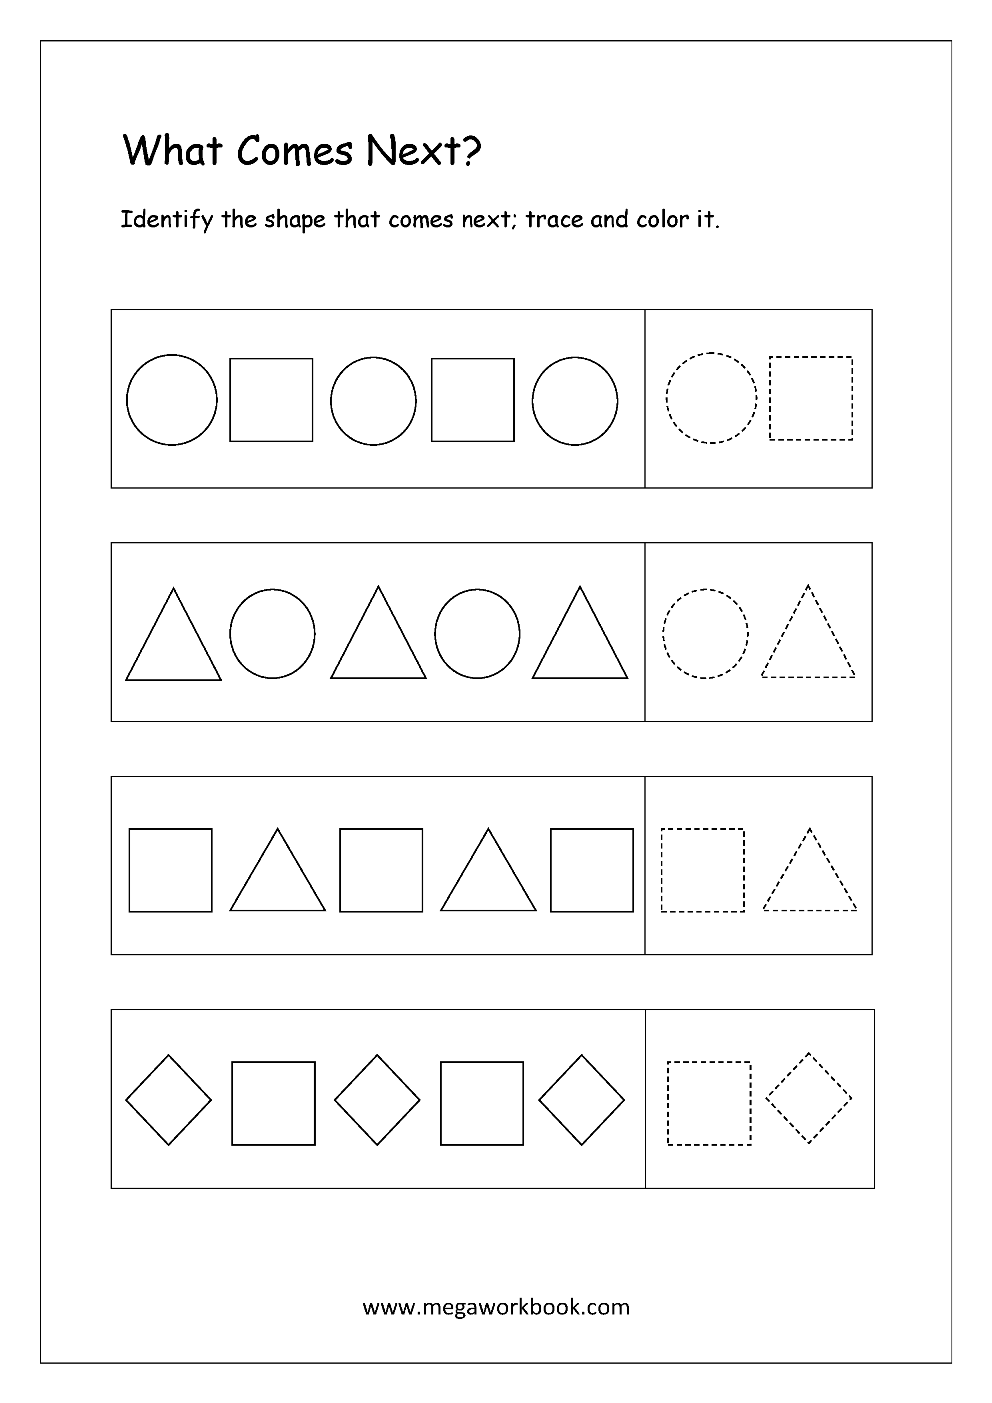 worksheet Kindergarten Pattern Worksheets free printable shapes and pattern worksheets for preschool identification what comes next